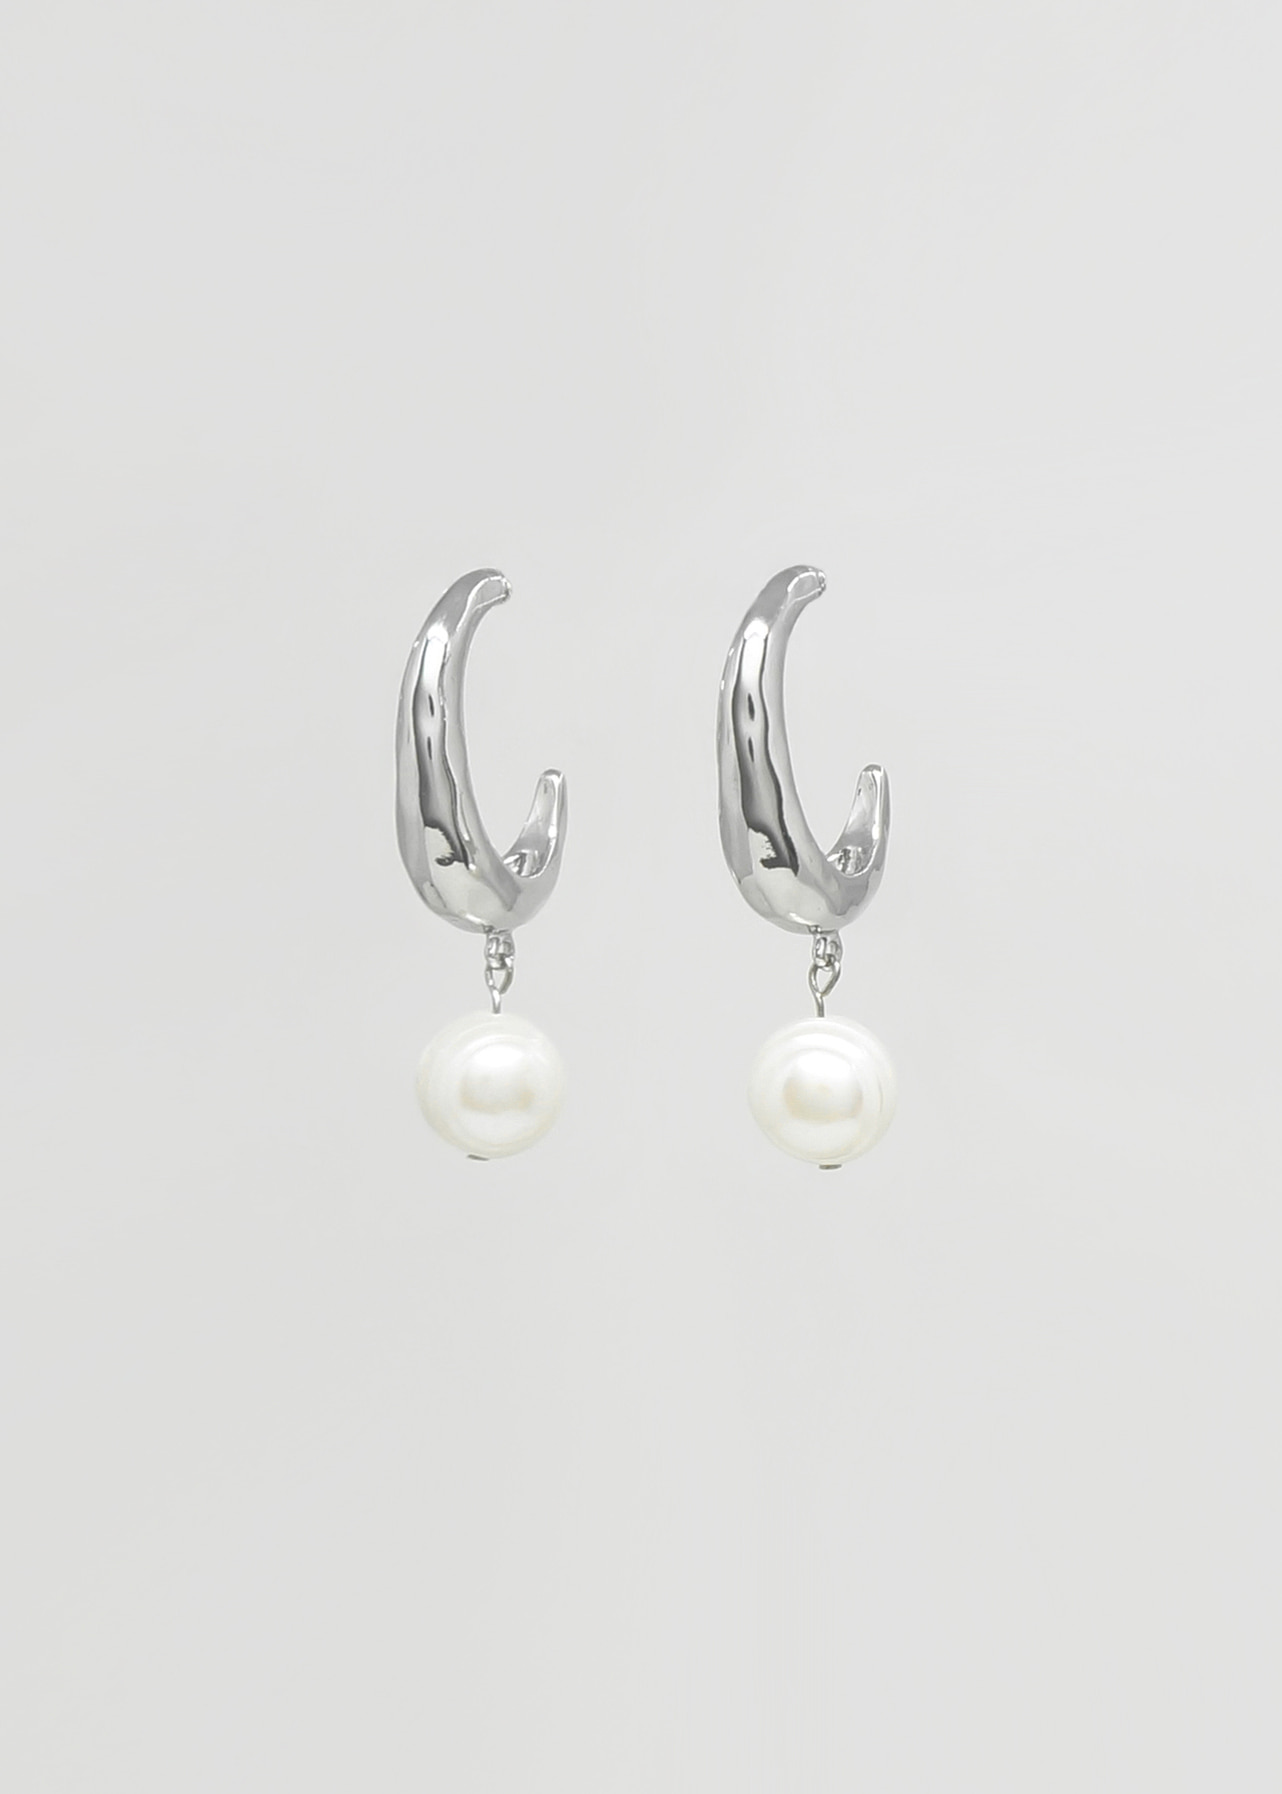 담수진주 해머드 후프이어링  Hammered Hoop Earring with Freshwater Pearls